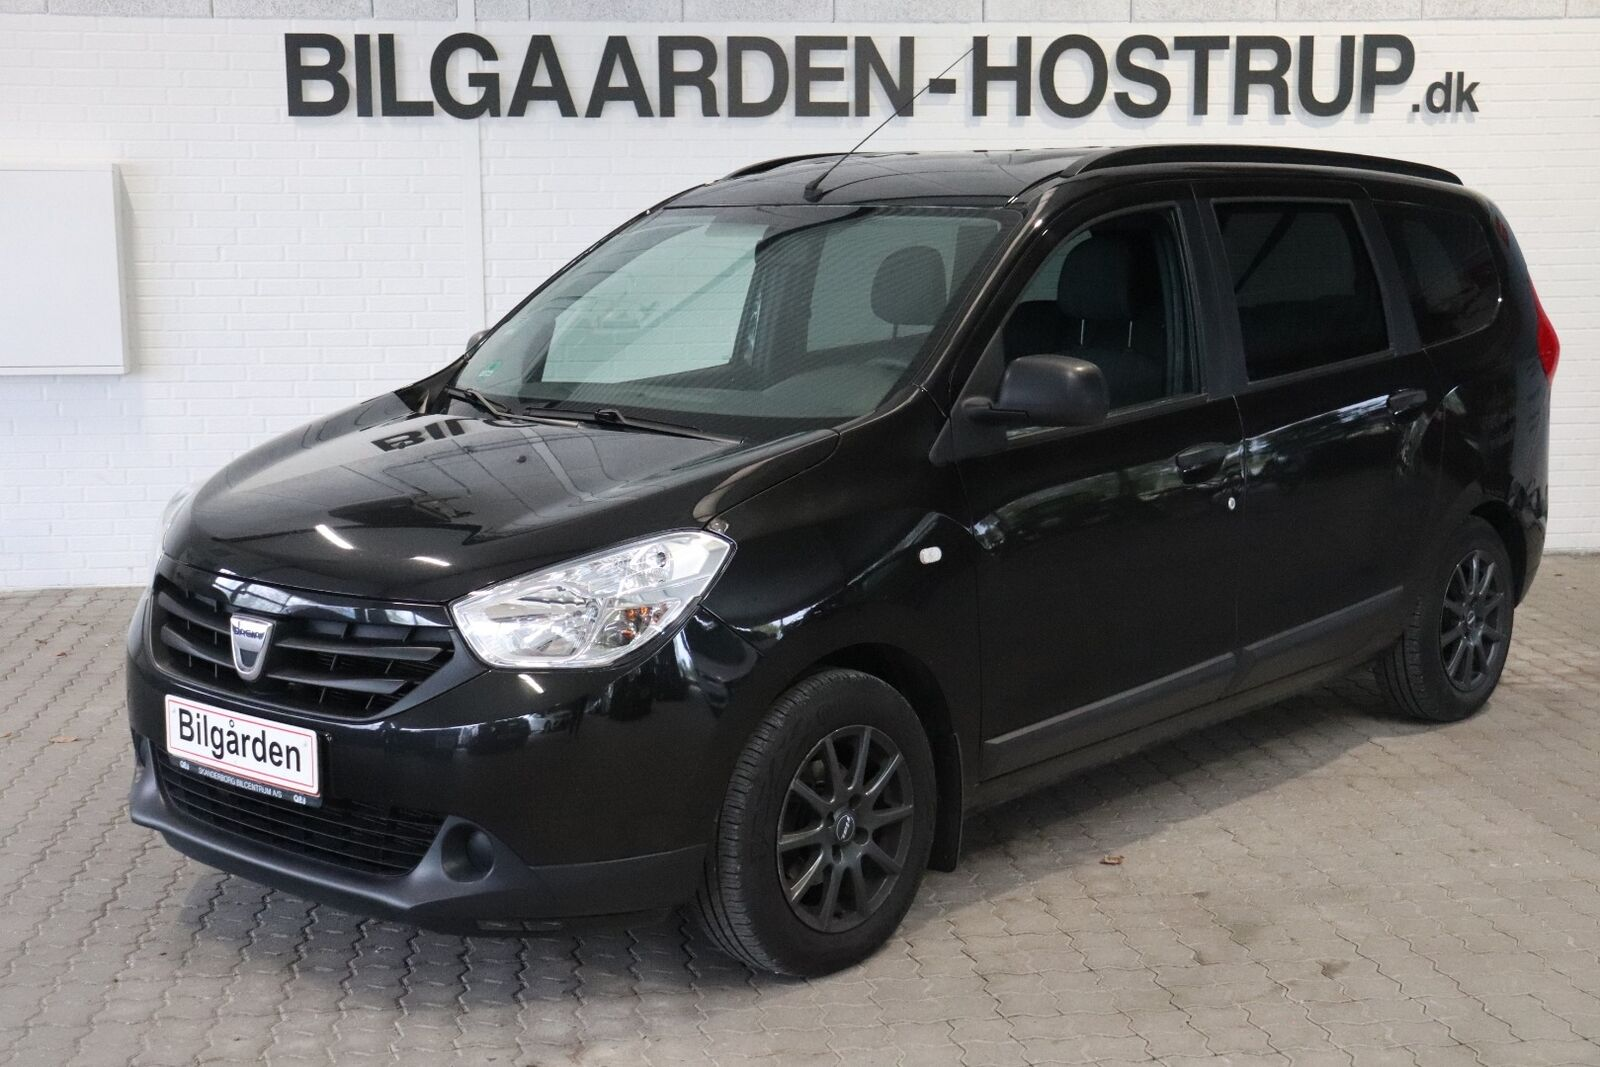 Dacia Lodgy 1,5 dCi 90 Ambiance 5d - 74.900 kr.